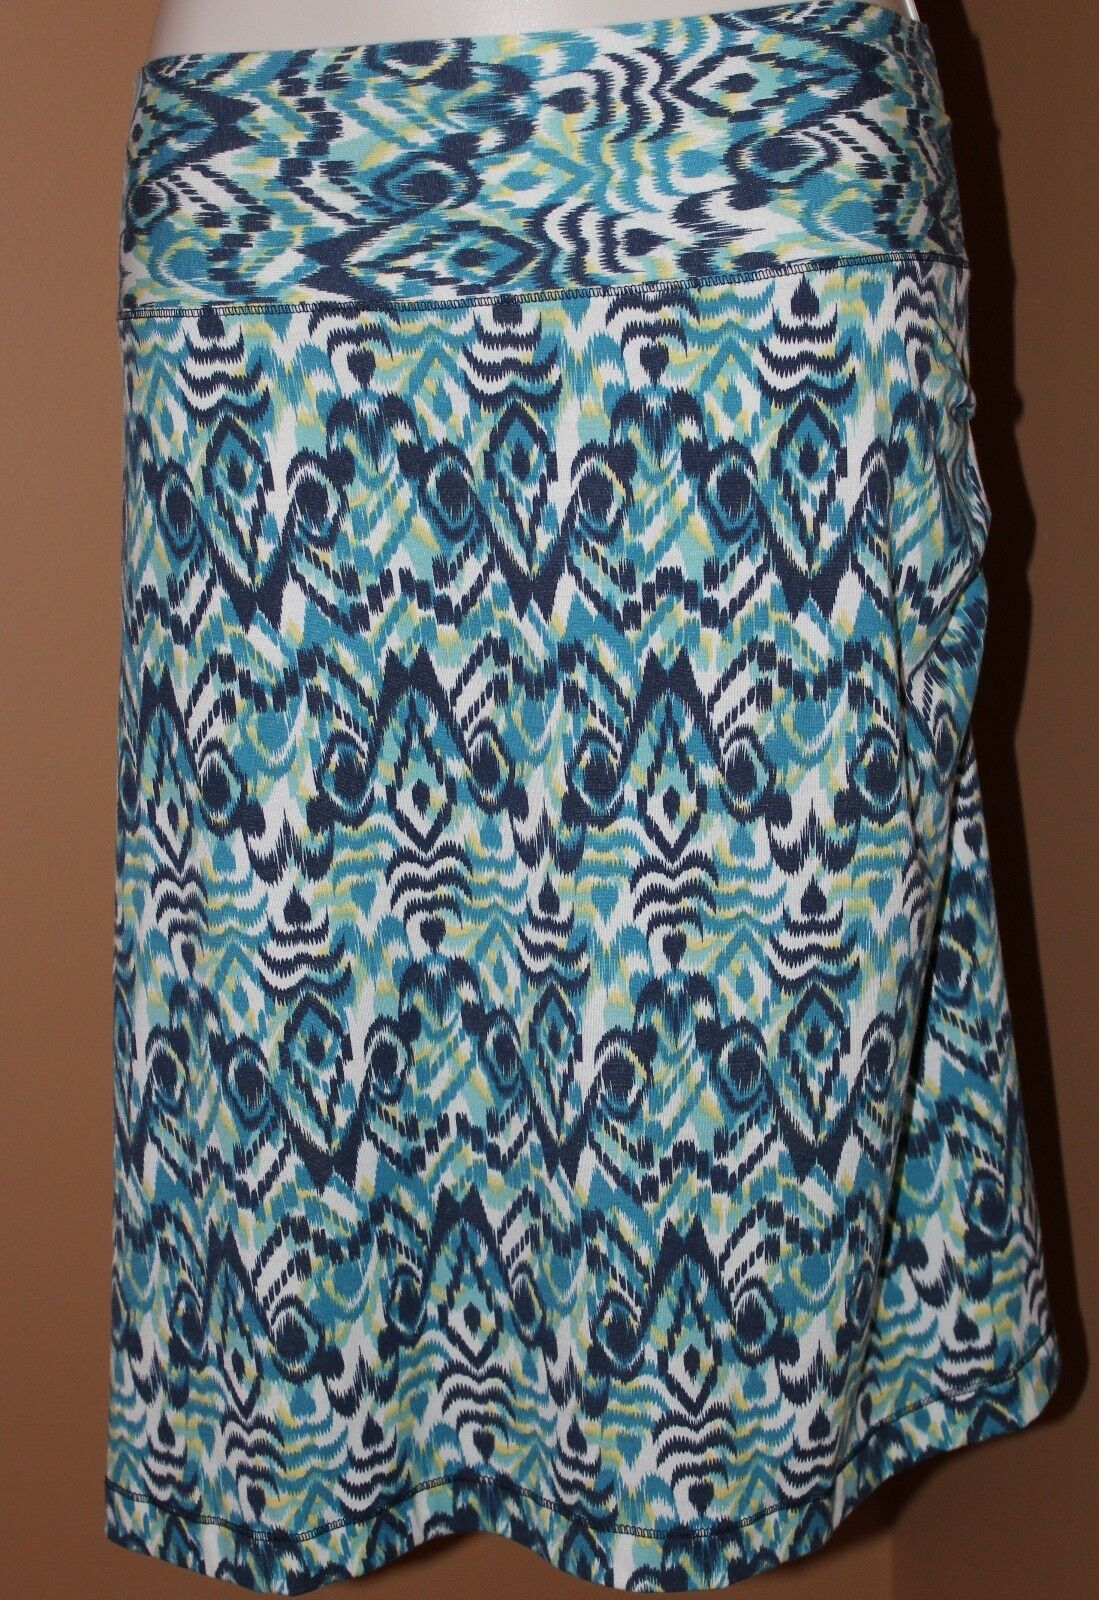 TITLE NINE bluee White Ikat Knit Stretch Skirt NWOT XS Ruched Side Straight